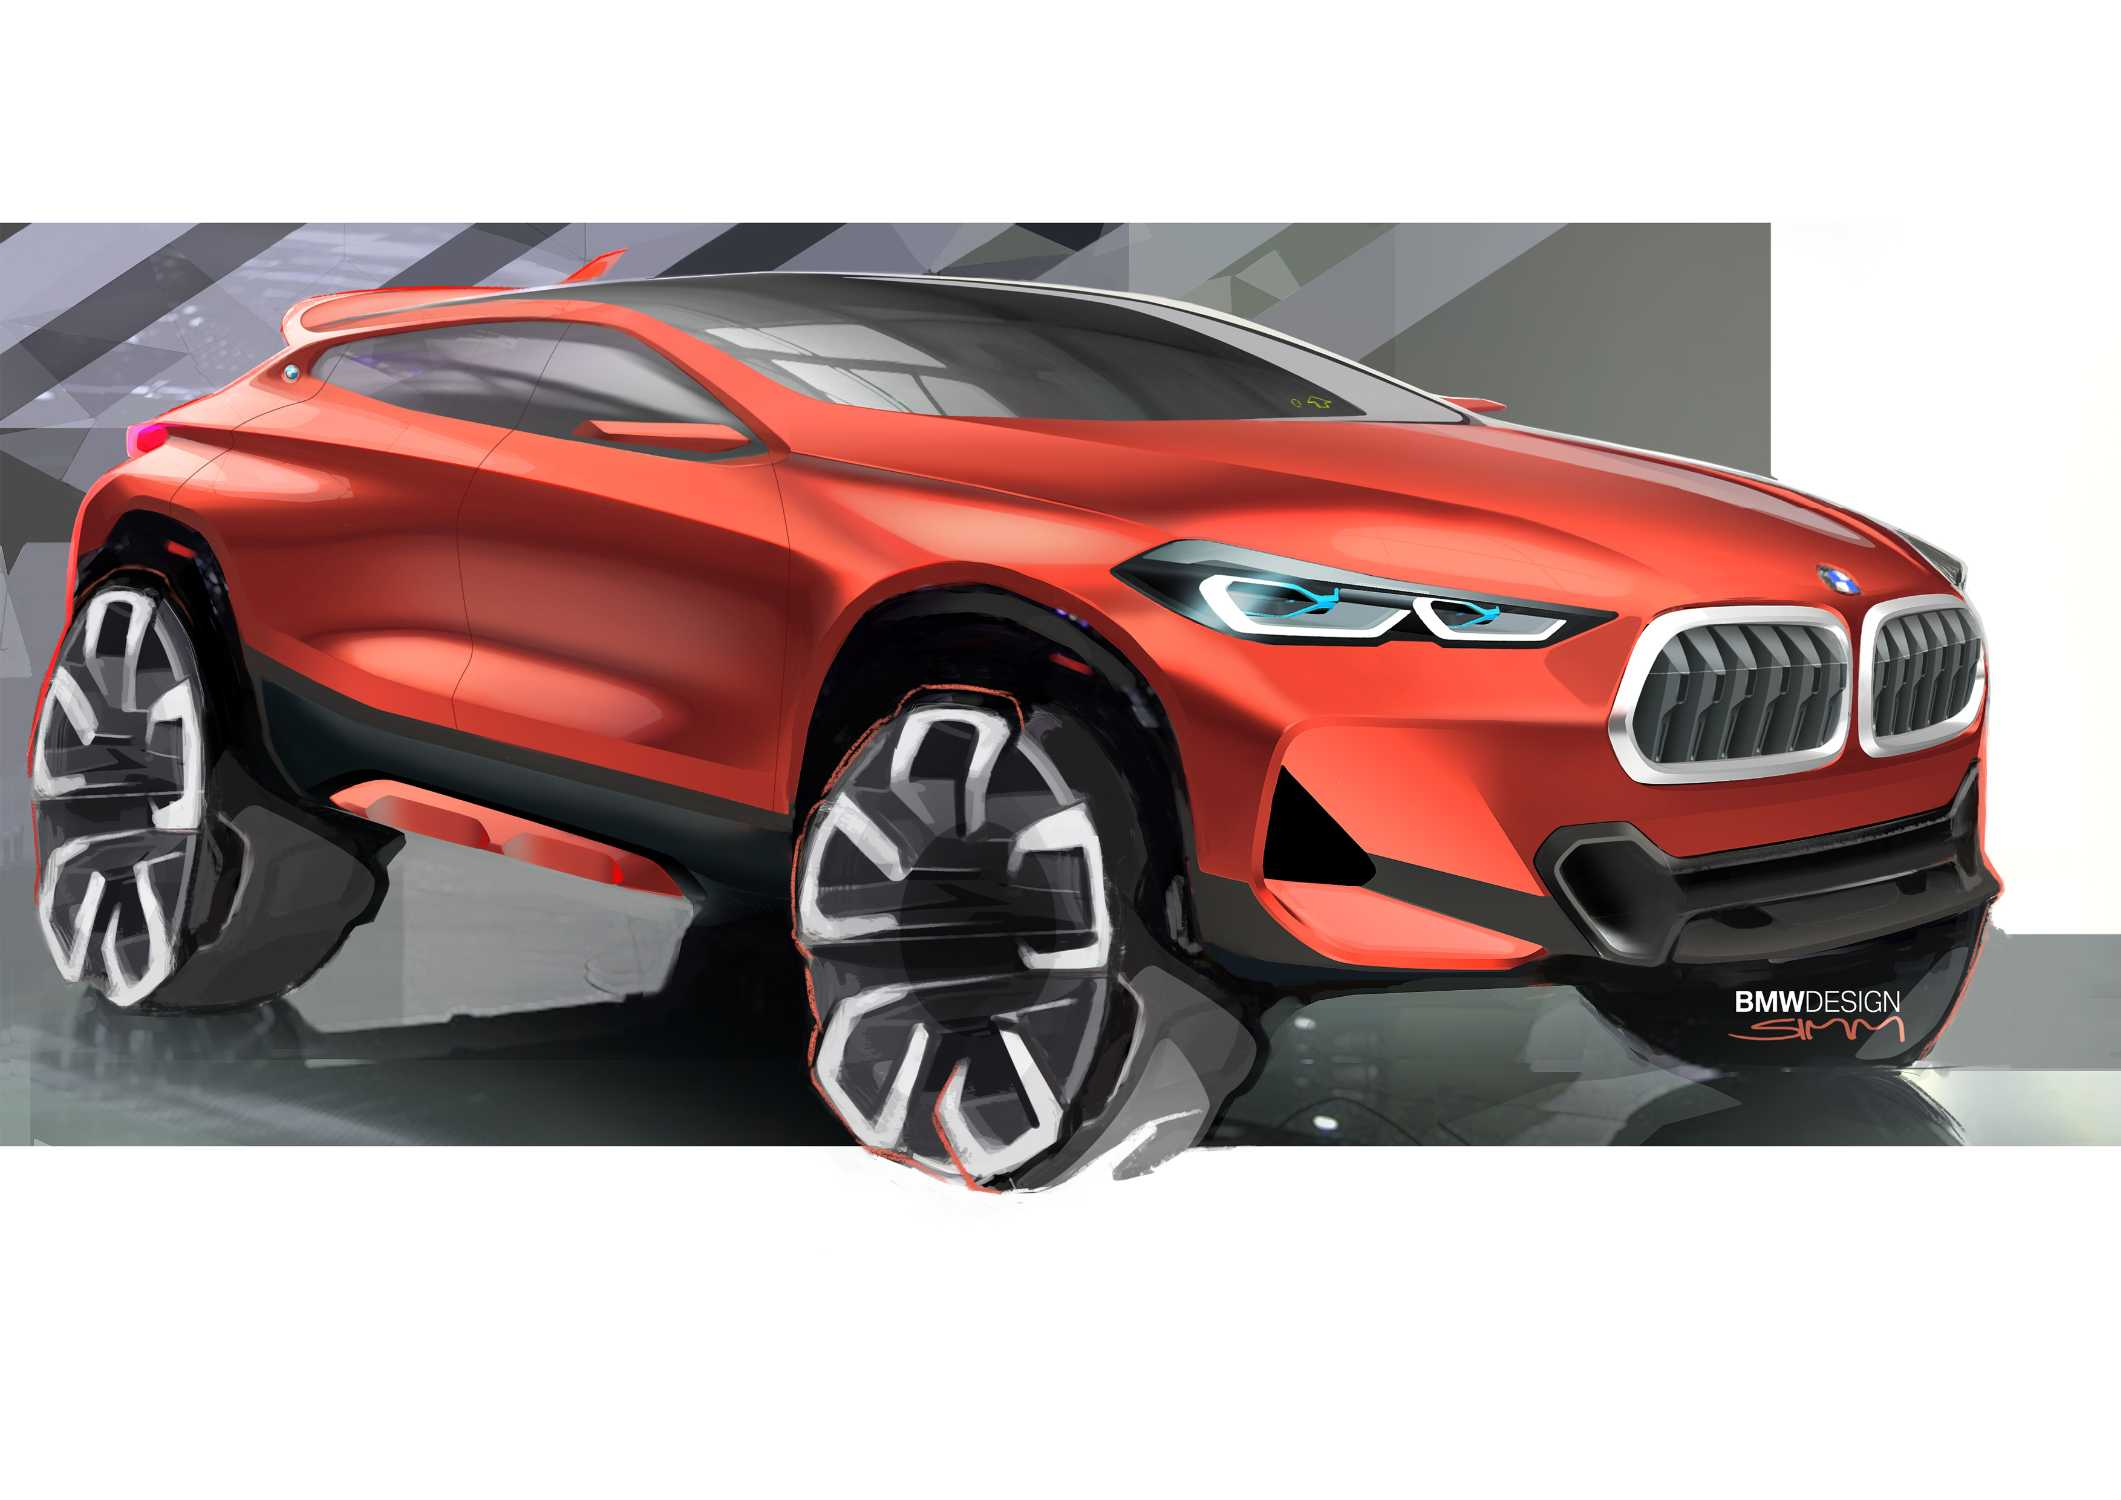 Bmw Concept X2 Design Sketch 09 2016 in addition Trailer as well Trailer further Foto Microcar Macchi ta 2017 131653 besides Gem E825 Car News. on global electric motorcars